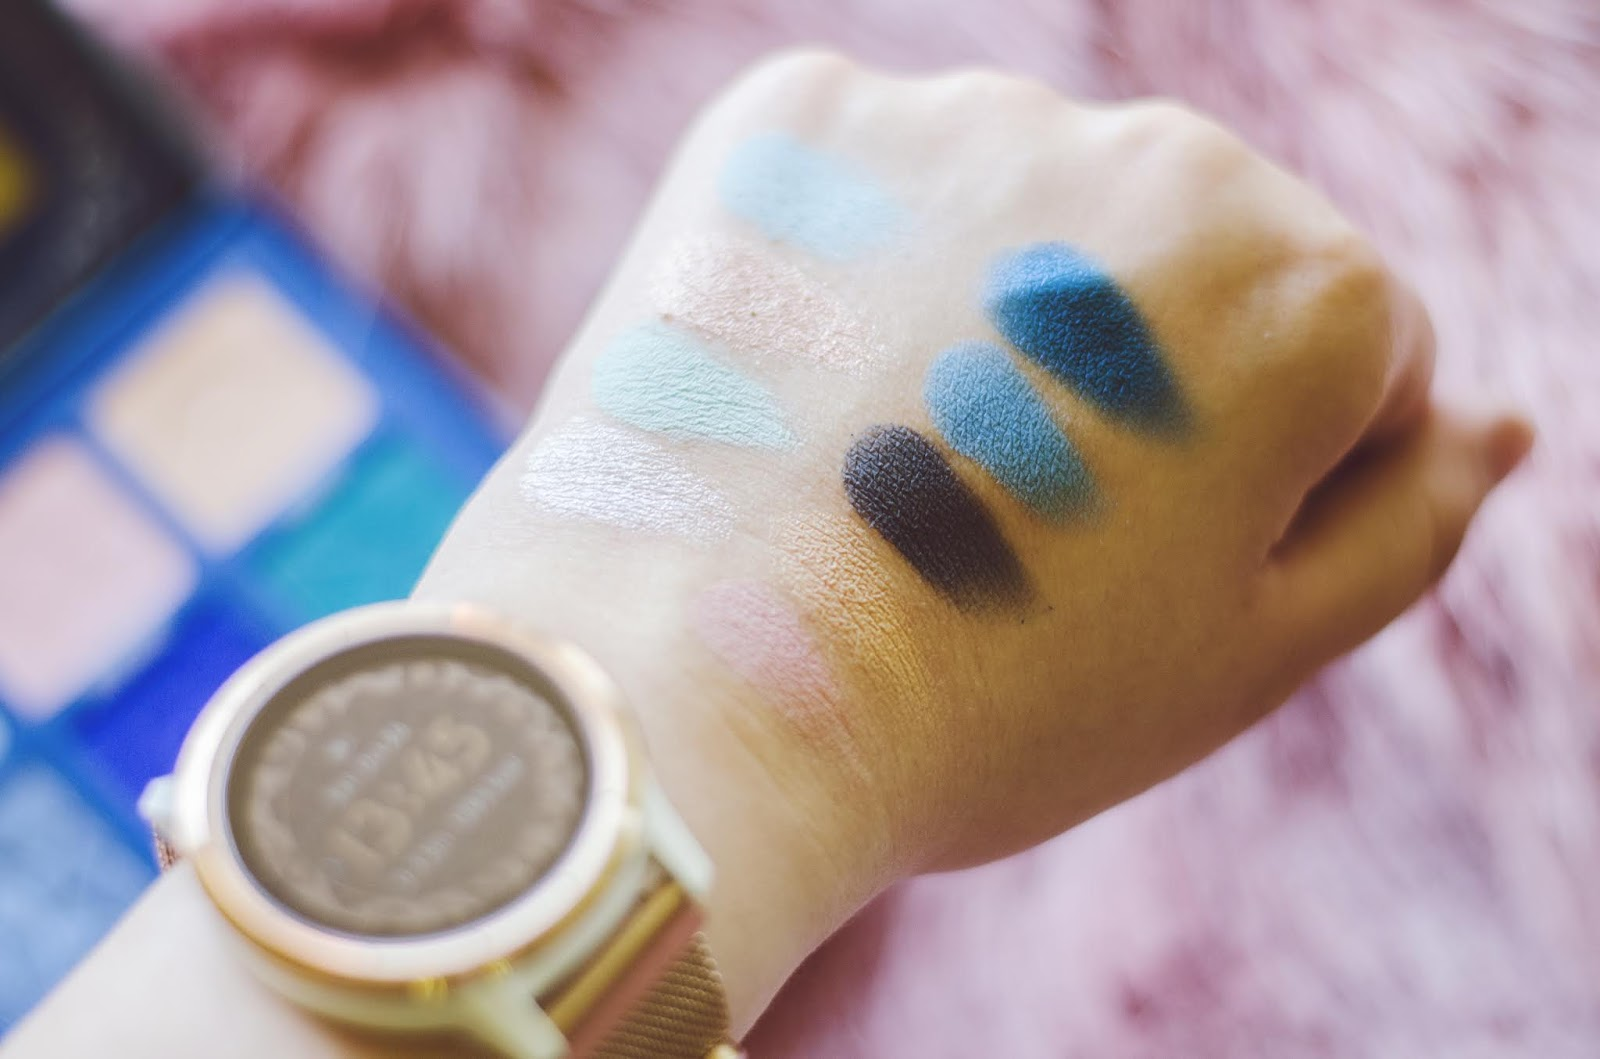 Jeffree Star Blue Blood Cosmetics swatch of shades Cullinan Mintea Crystal Flesh Im Cold Untouchable Priceless Power Blue Blood Deceased